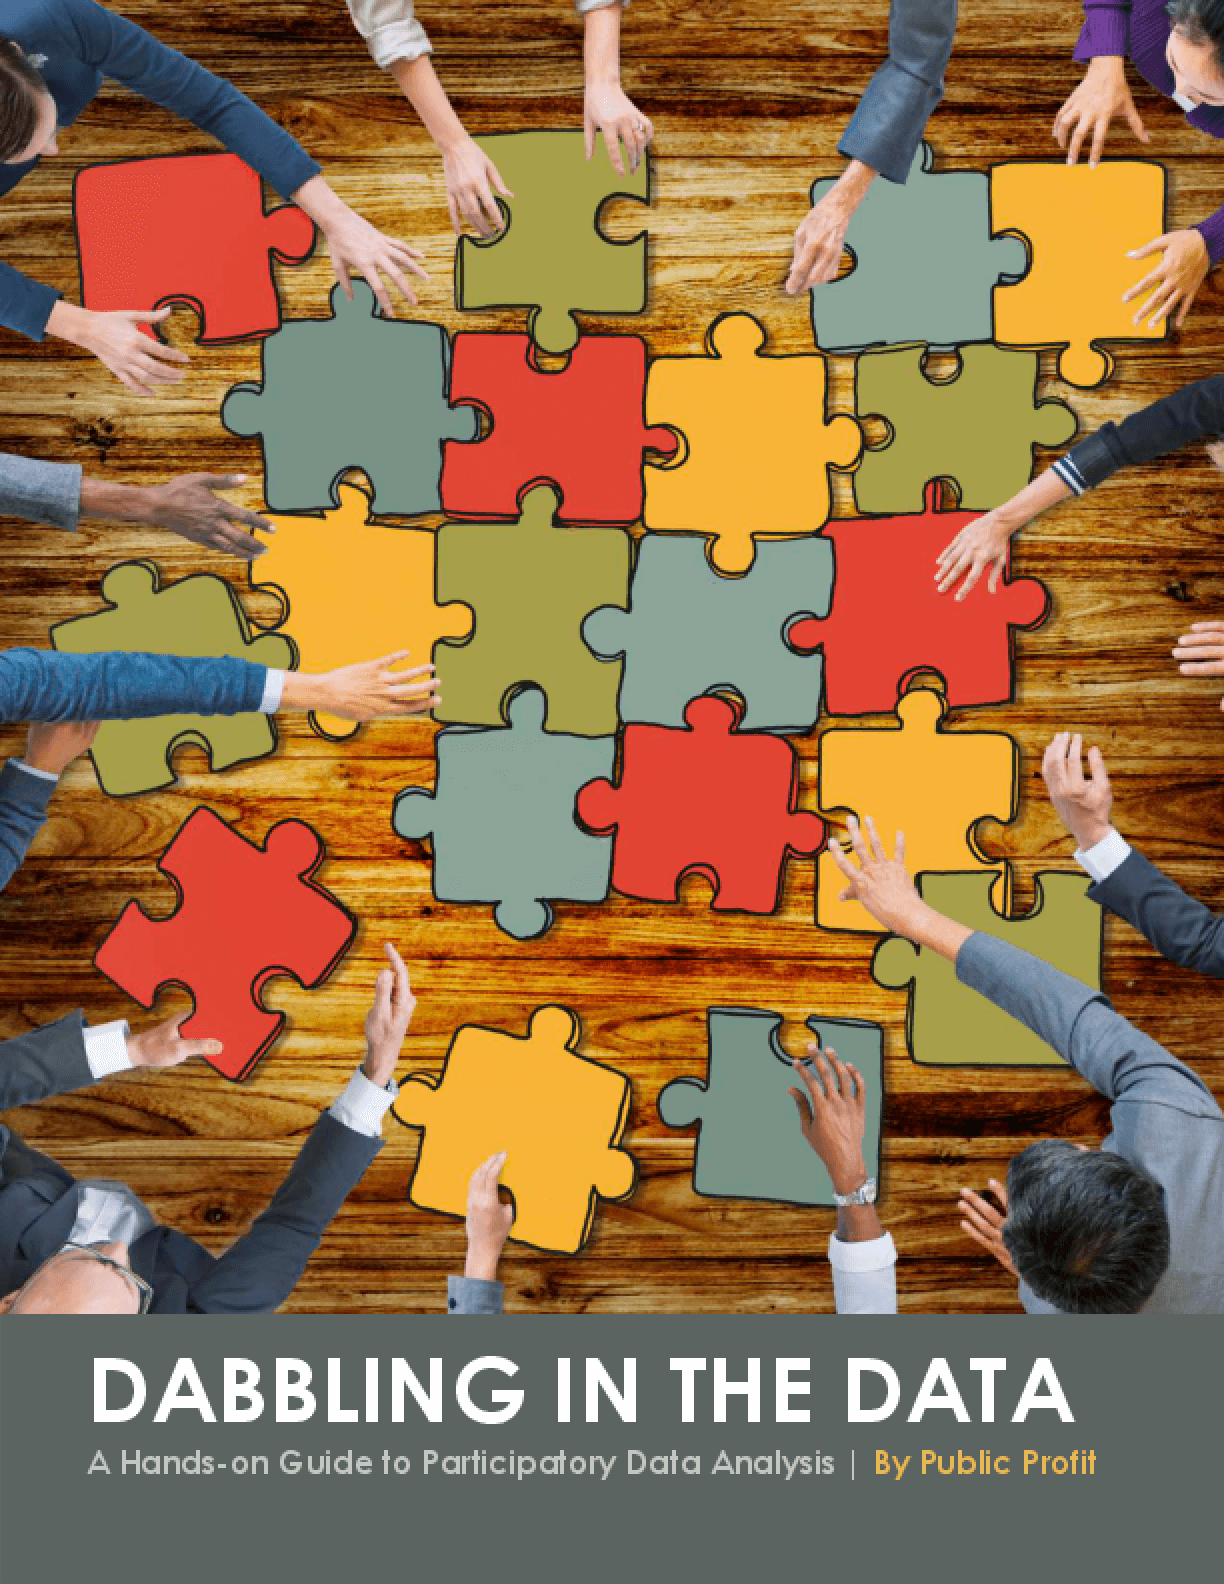 Dabbling in the Data: A Hands-on Guide to Participatory Data Analysis